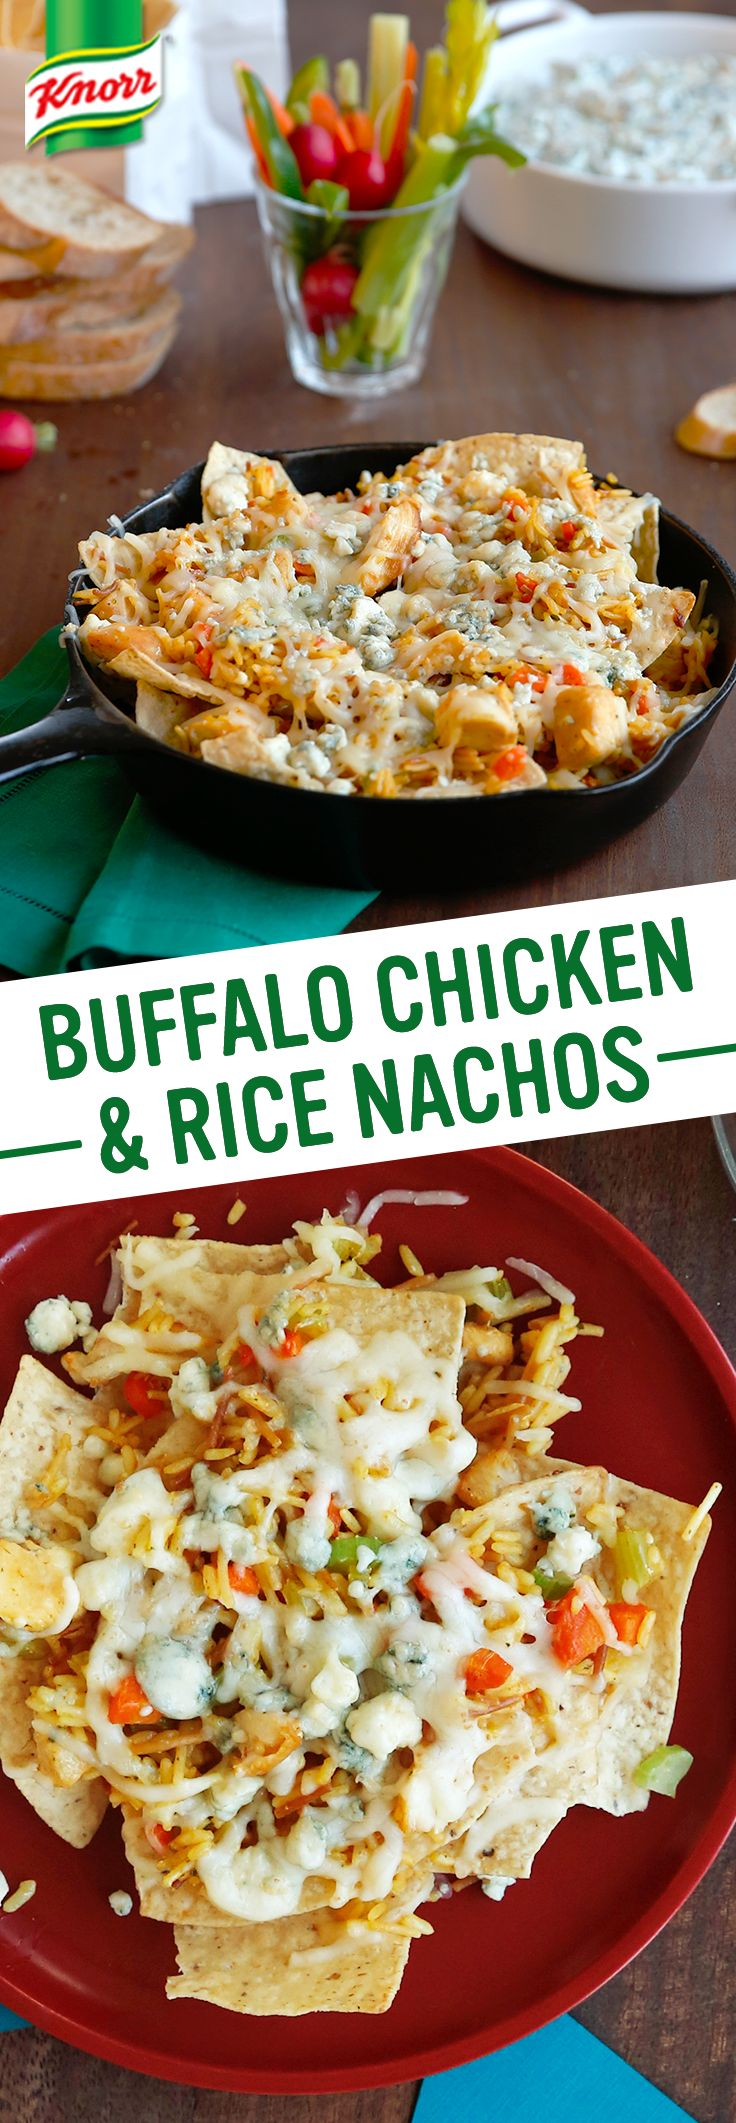 The best food idea for game time is Knorr's Buffalo Chicken & Rice Nachos. Have a ball making this easy recipe. Touchdown with simple ingredients and super flavor. This delicious meal is a field goal for your mouth. 1. Preheat oven. Arrange chips on baking sheets 2. Top w/ Buffalo Chicken & Rice, sprinkle w/ crumbled blue & shredded mozzarella cheese mix 3. Bake 10 min., until melted. Serve w/ hot sauce. Enjoy!